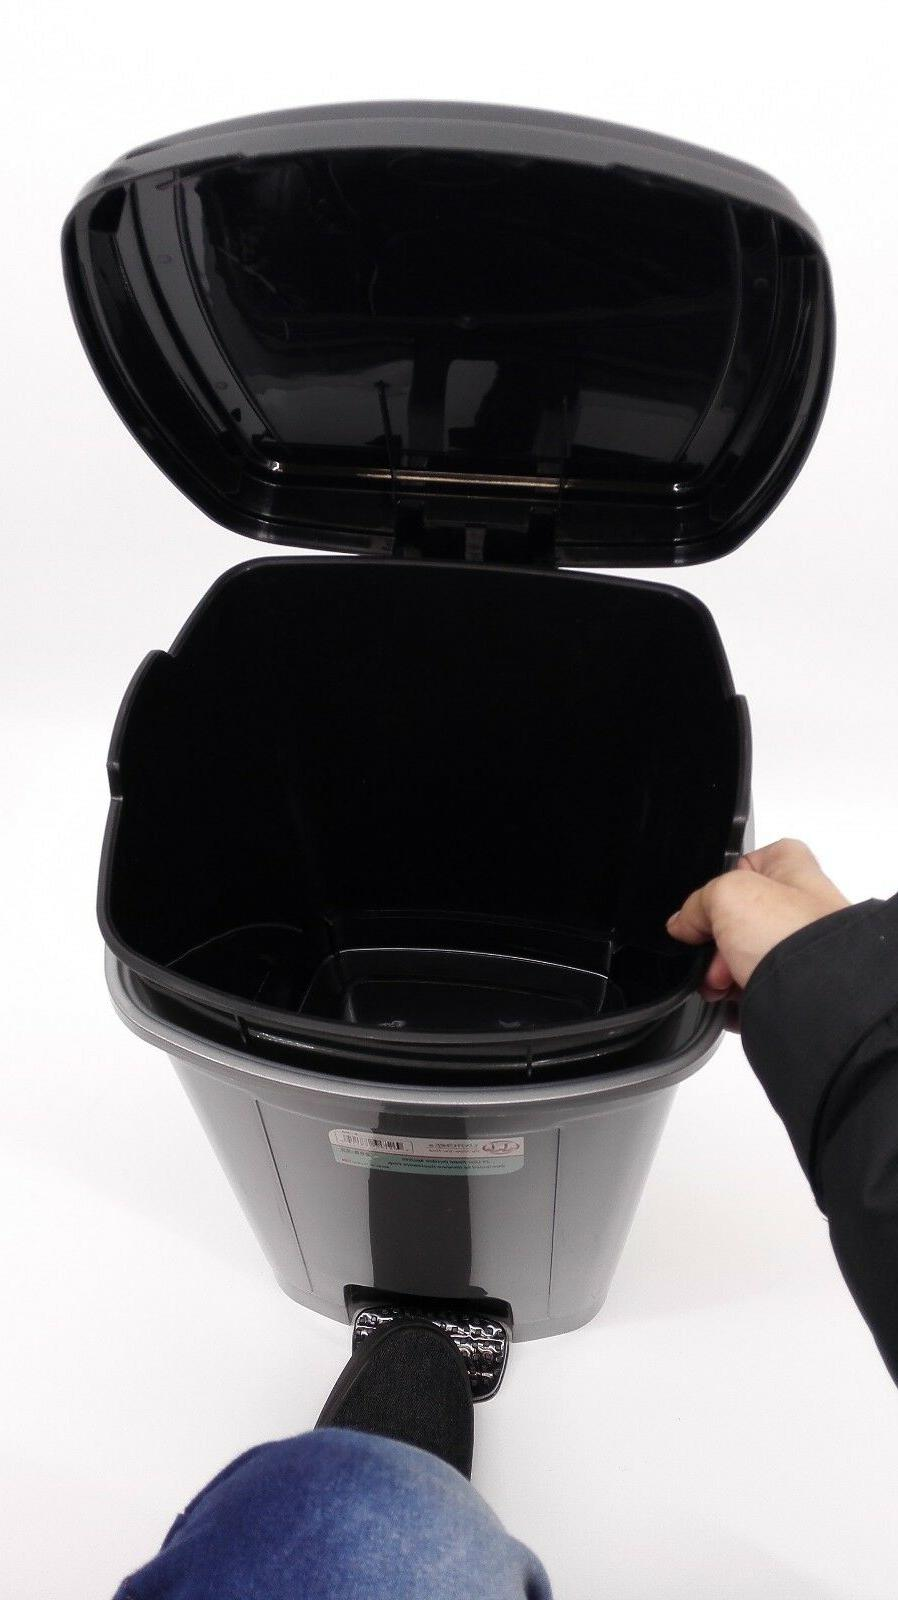 Pedal Dustbin Trash Can For Room,